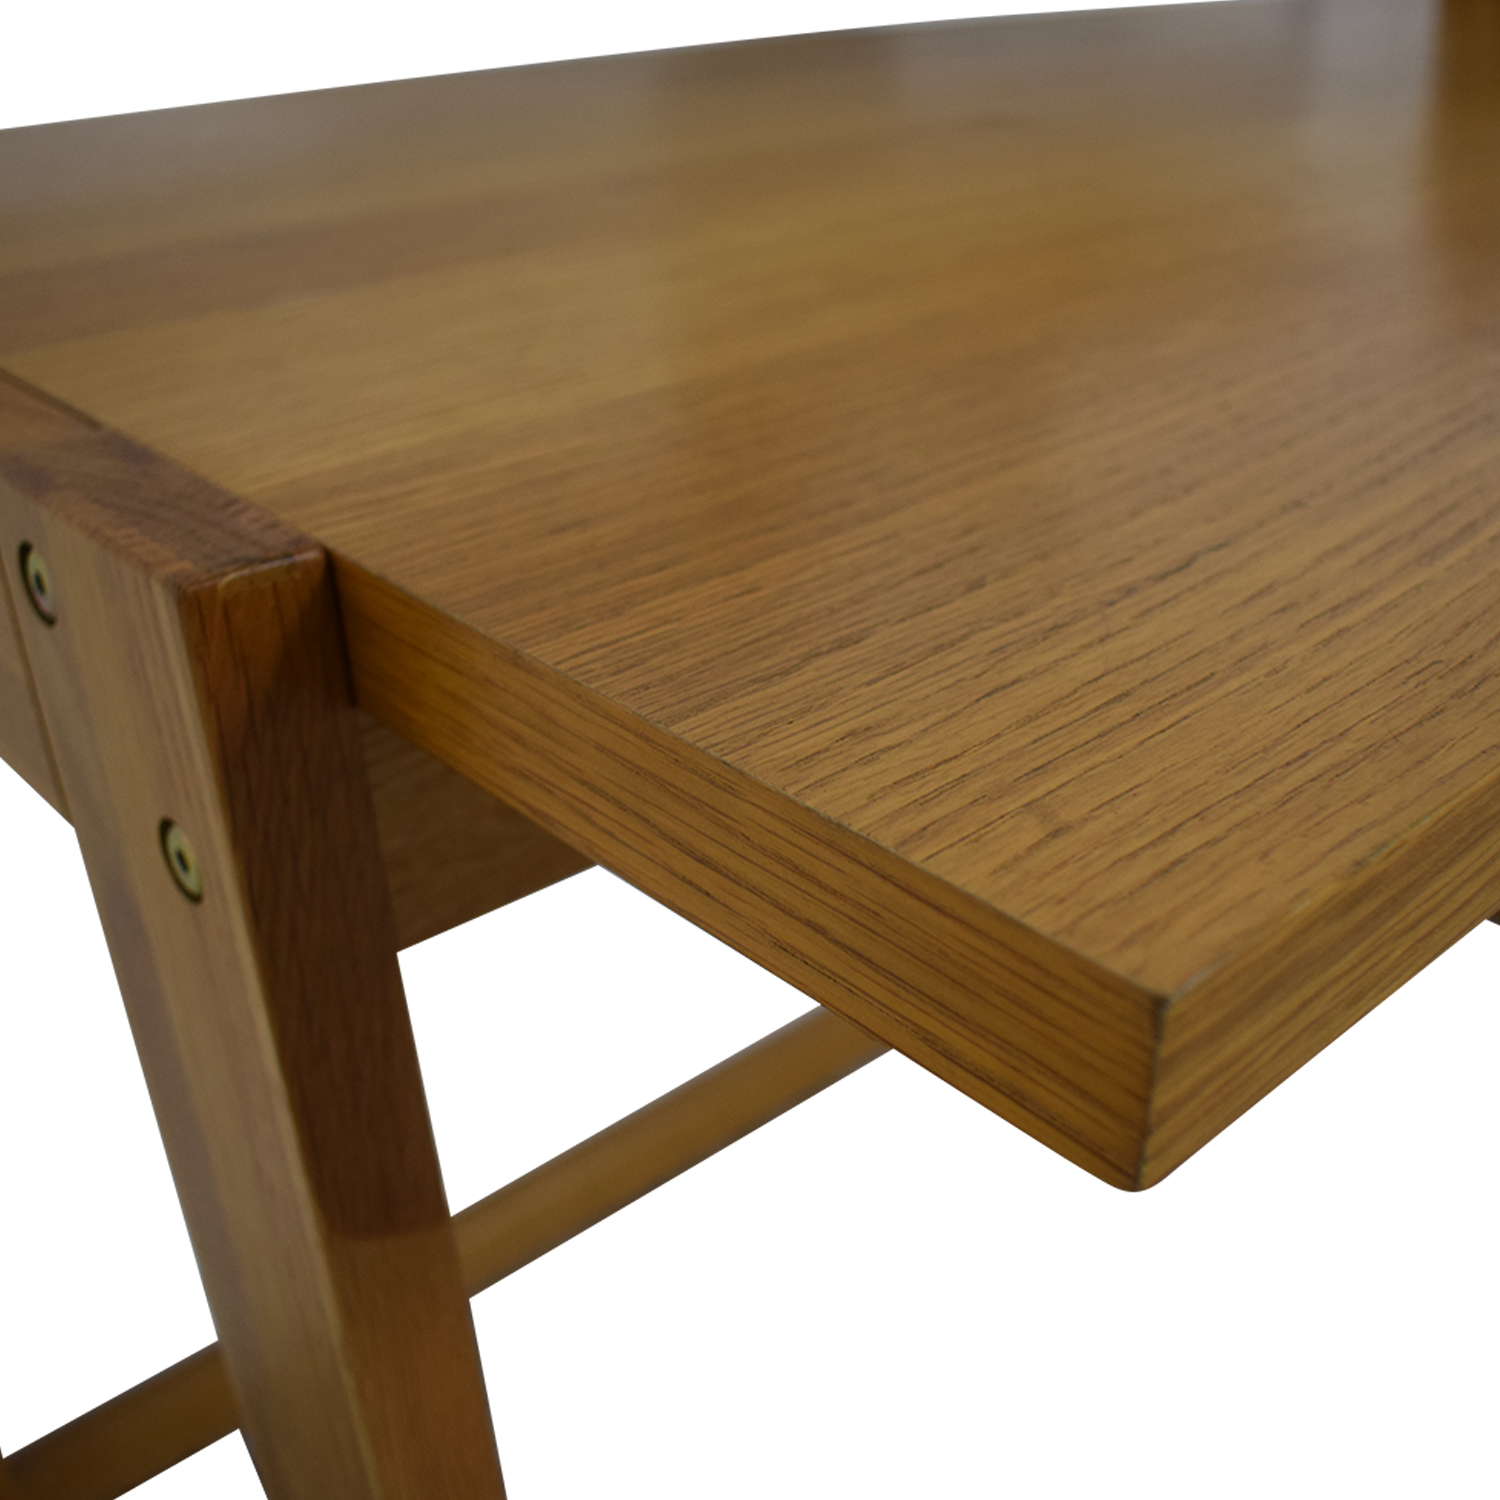 CB2 CB2 Wood Desk second hand